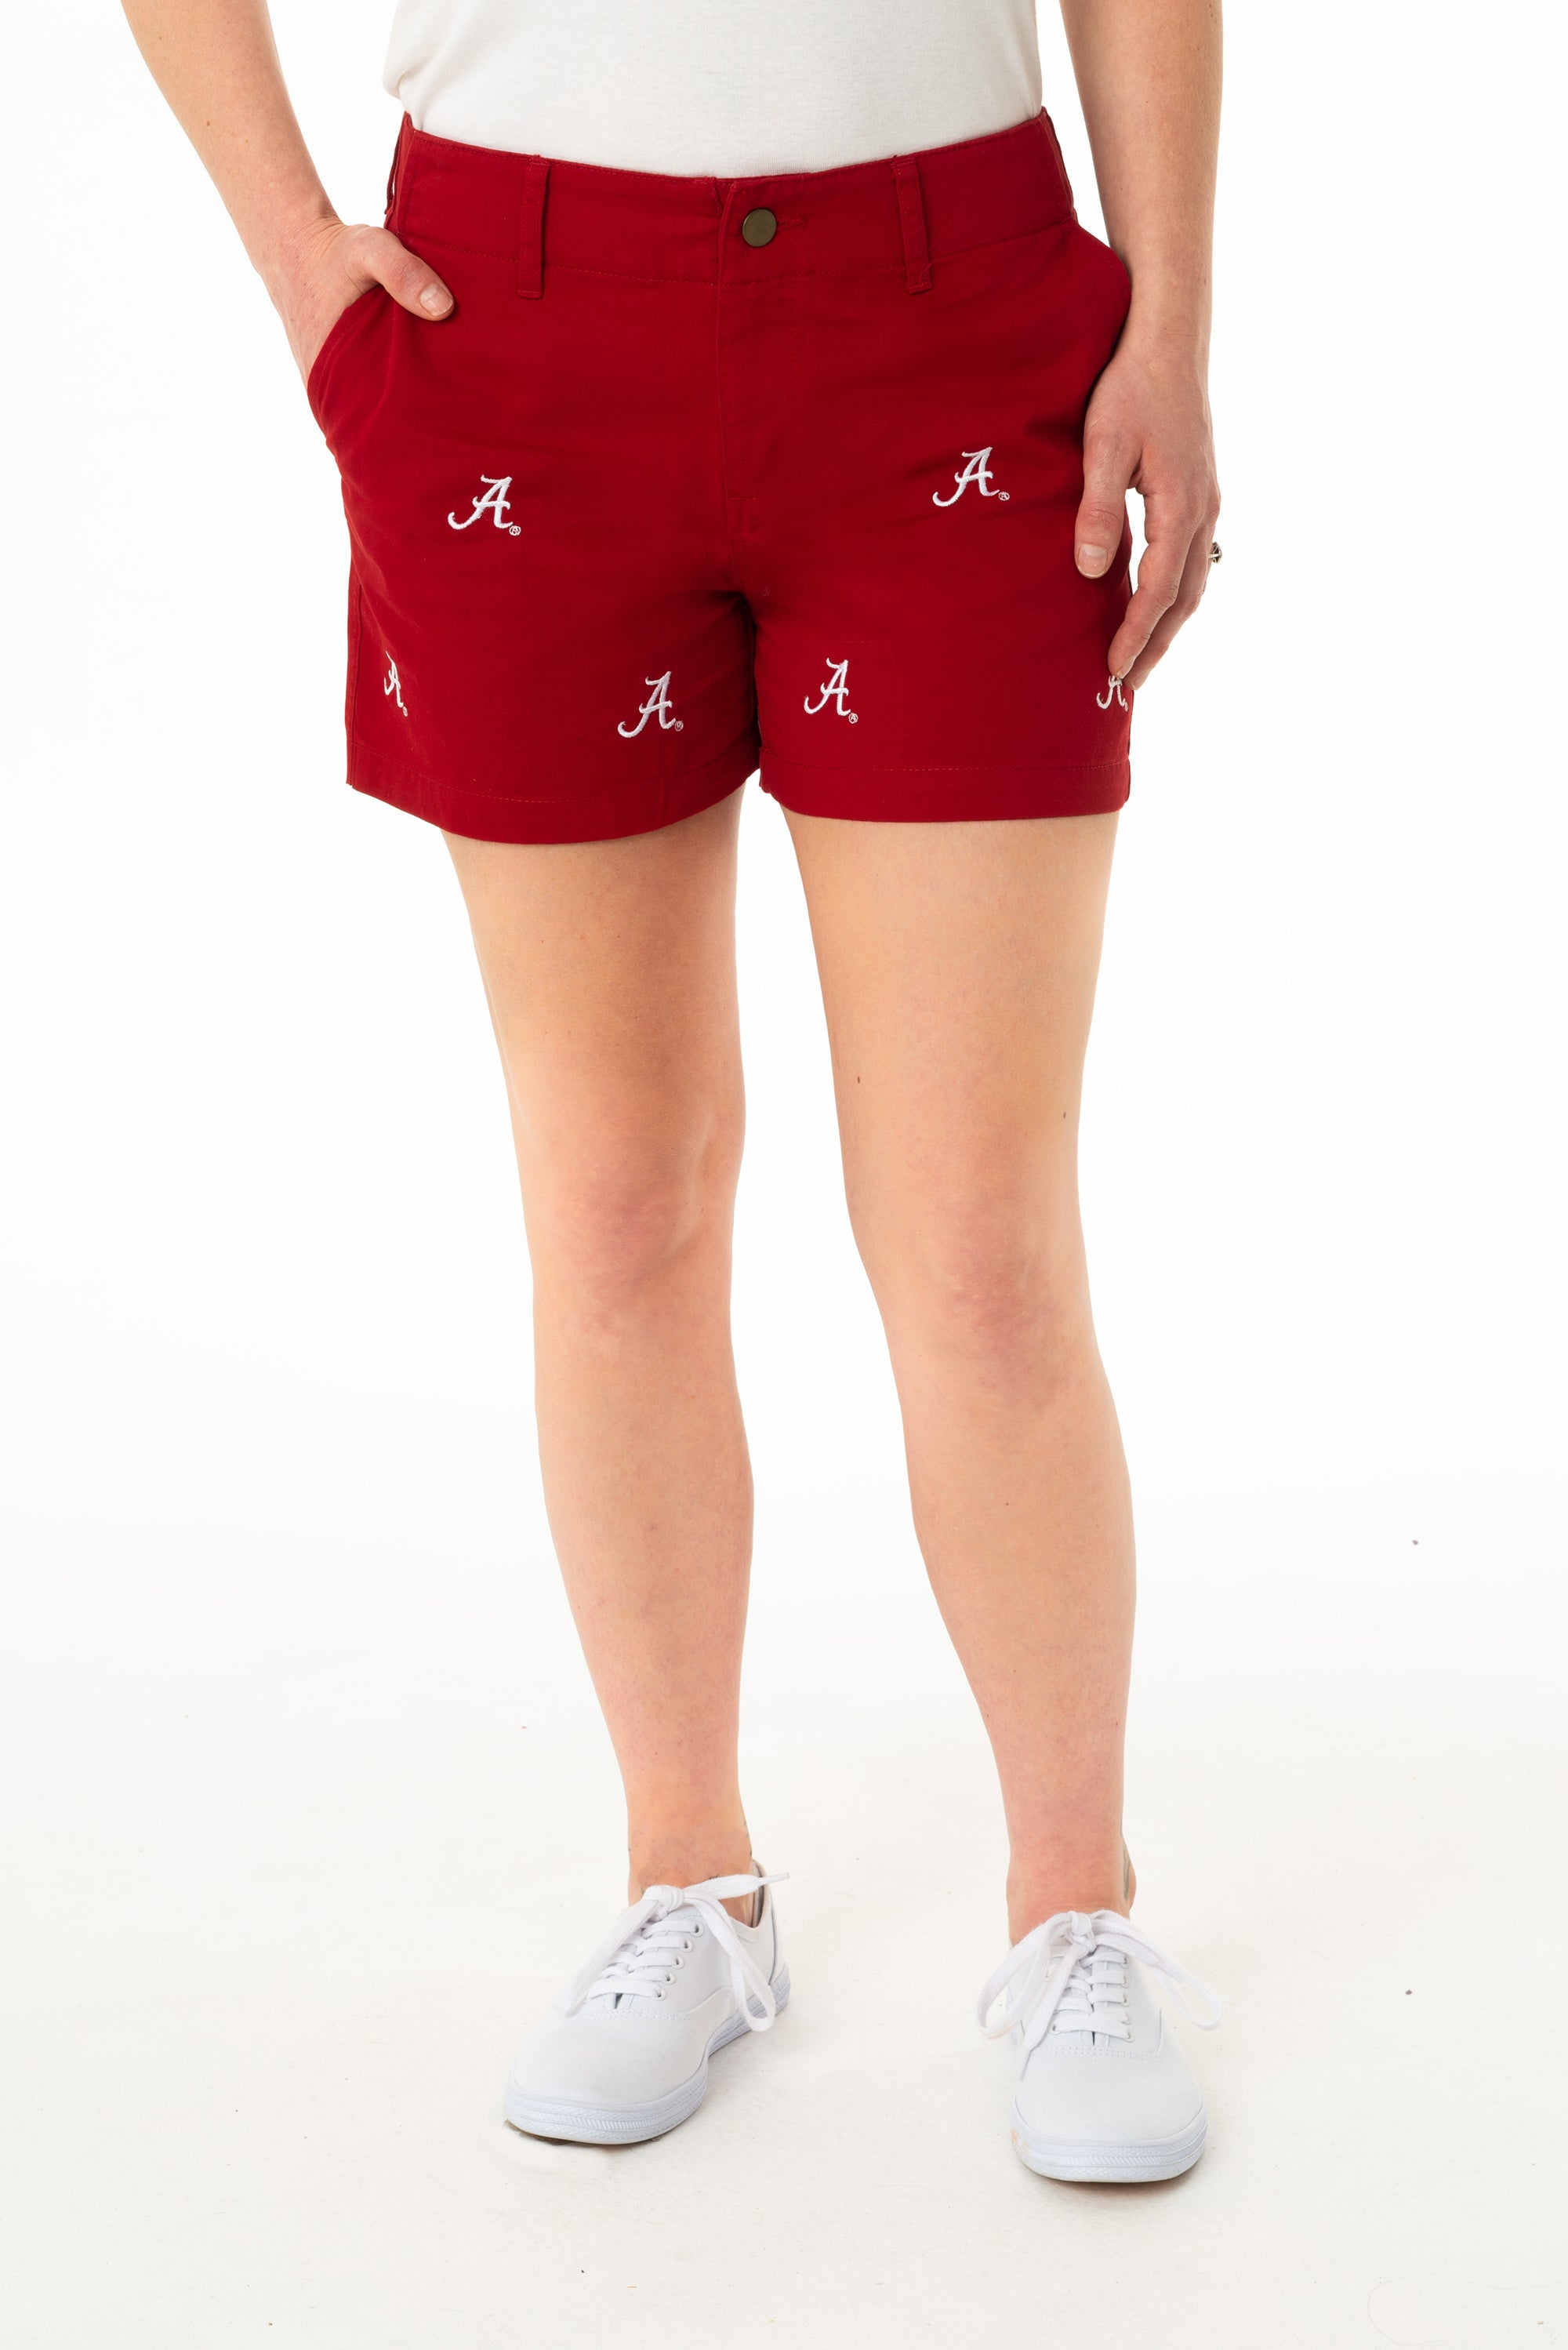 Alabama Women's Crimson Short